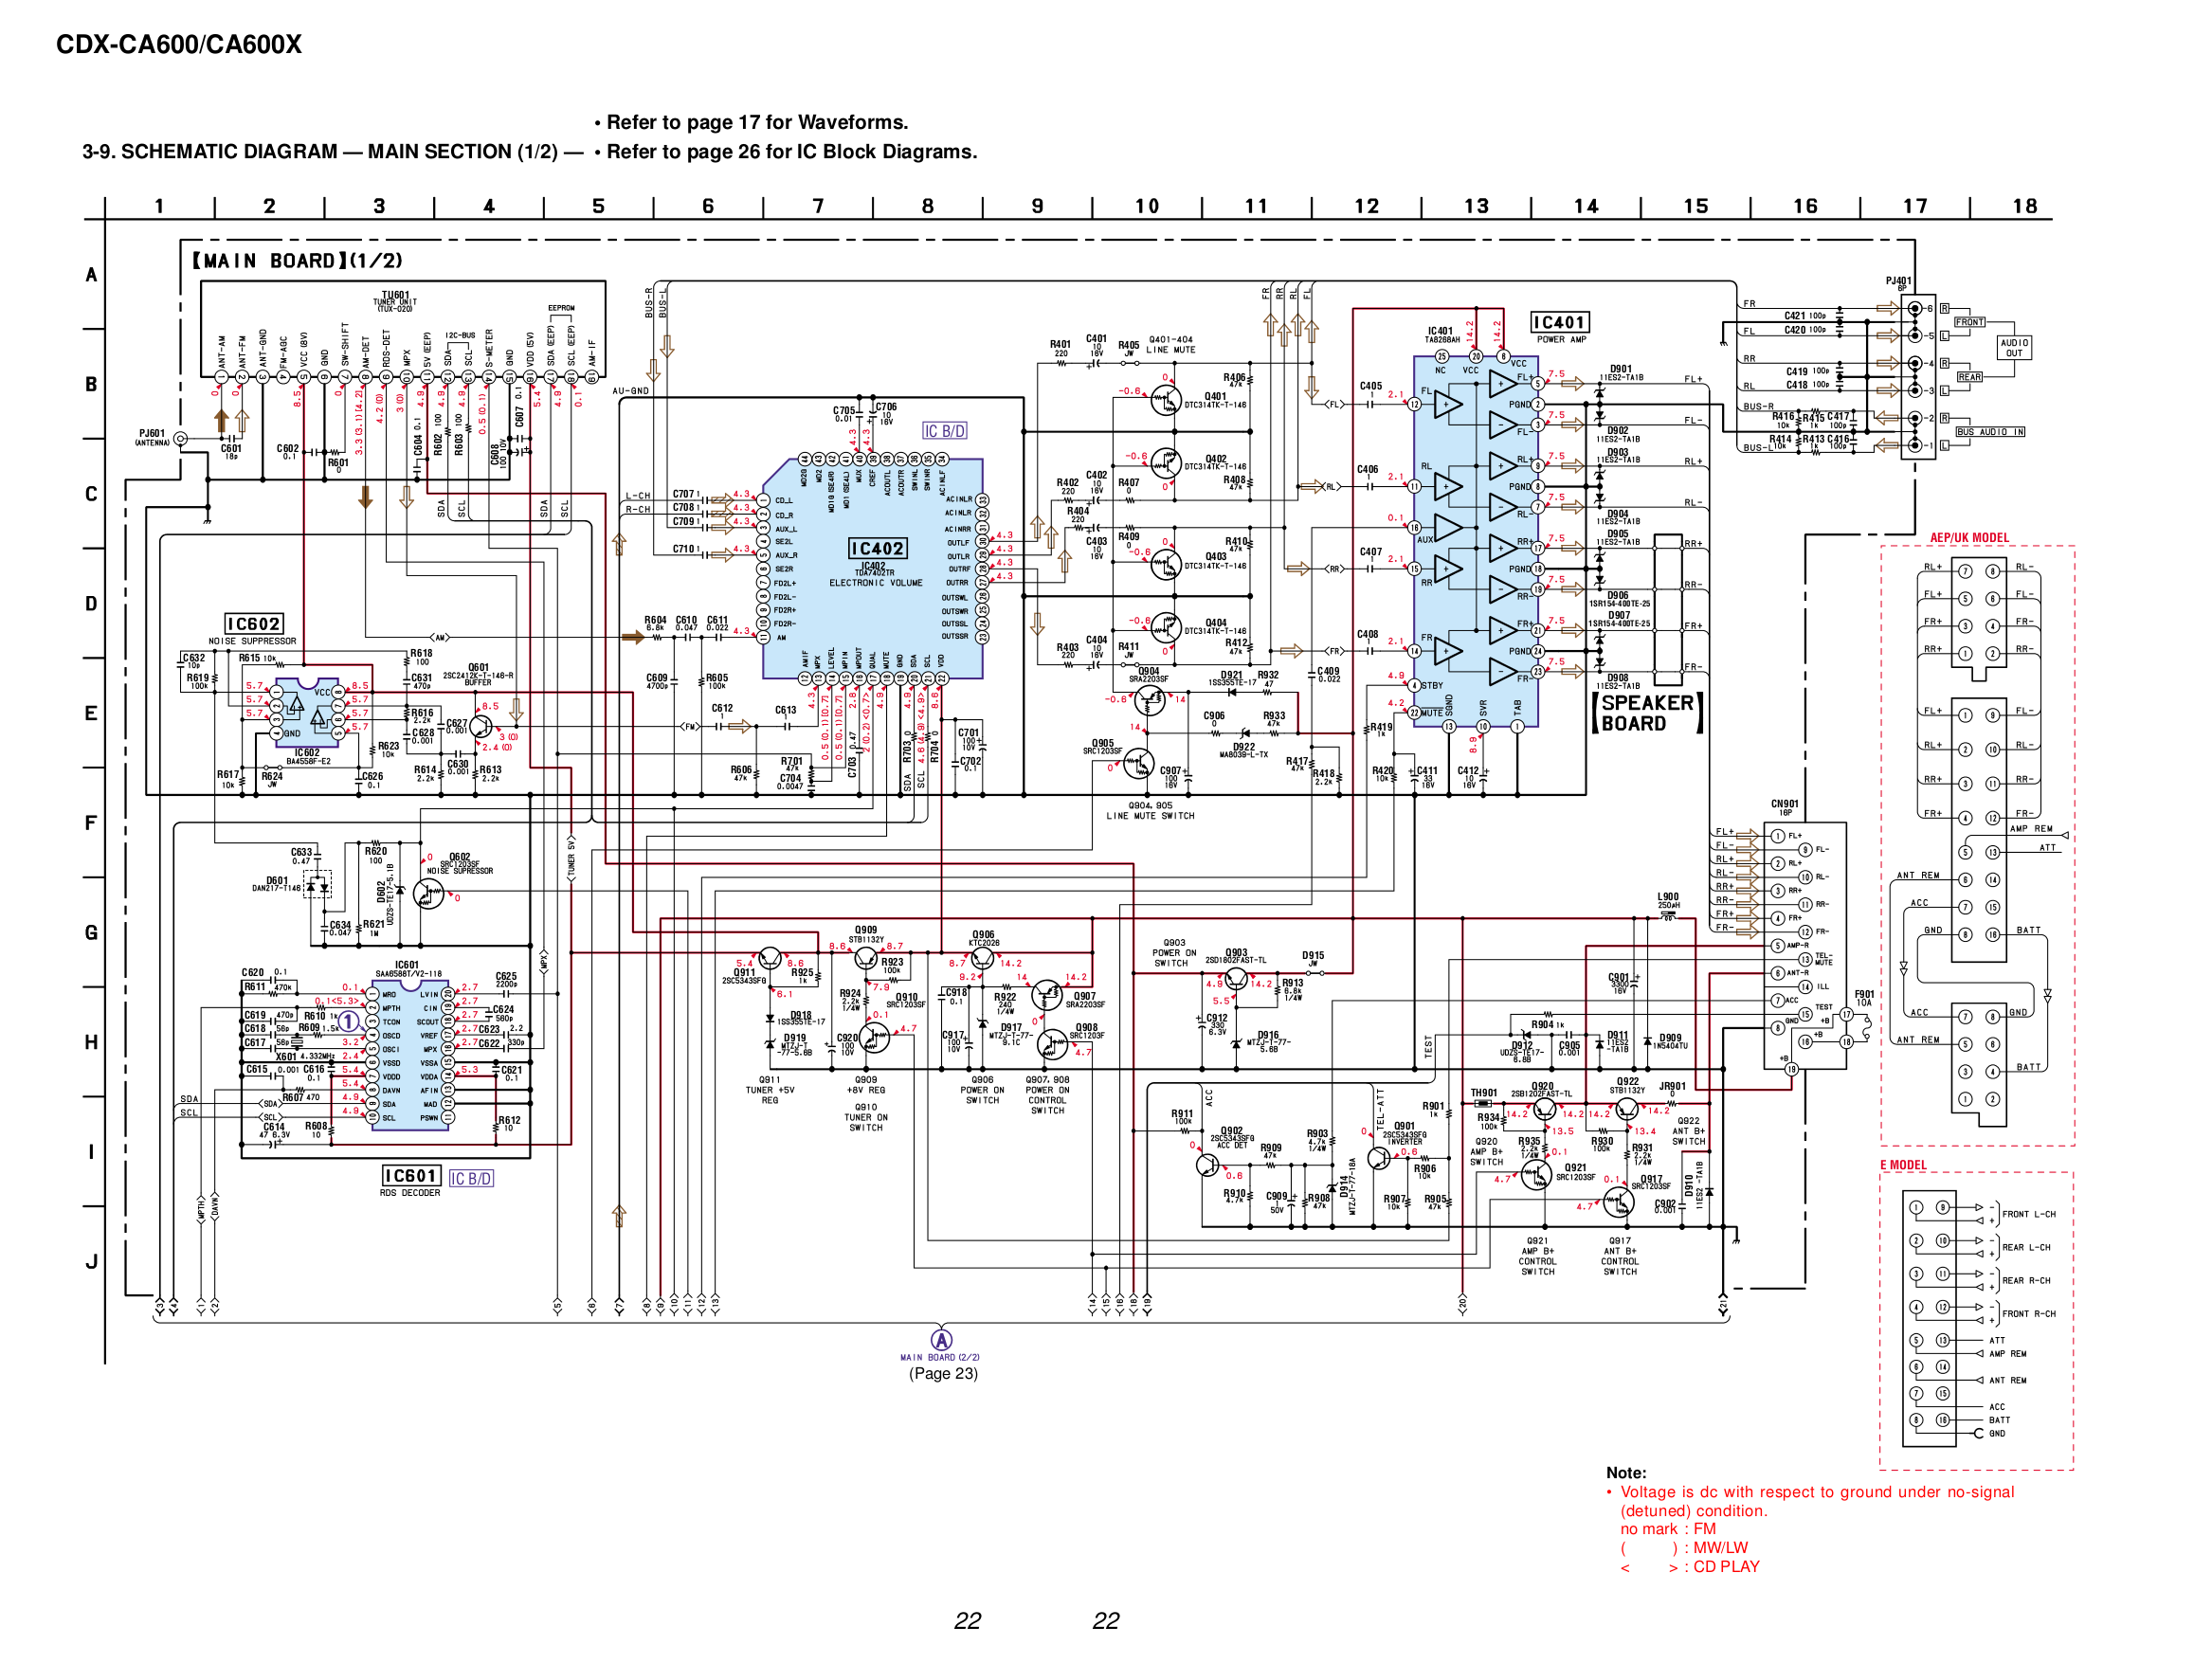 sony cdx l300 wiring diagram electrical wiring diagrams wiring color coding pdf manual for sony car receiver cdx l300 sony cd player wiring digram www helpowl com p sony cdx gt21w sony cdx l300 wiring diagram